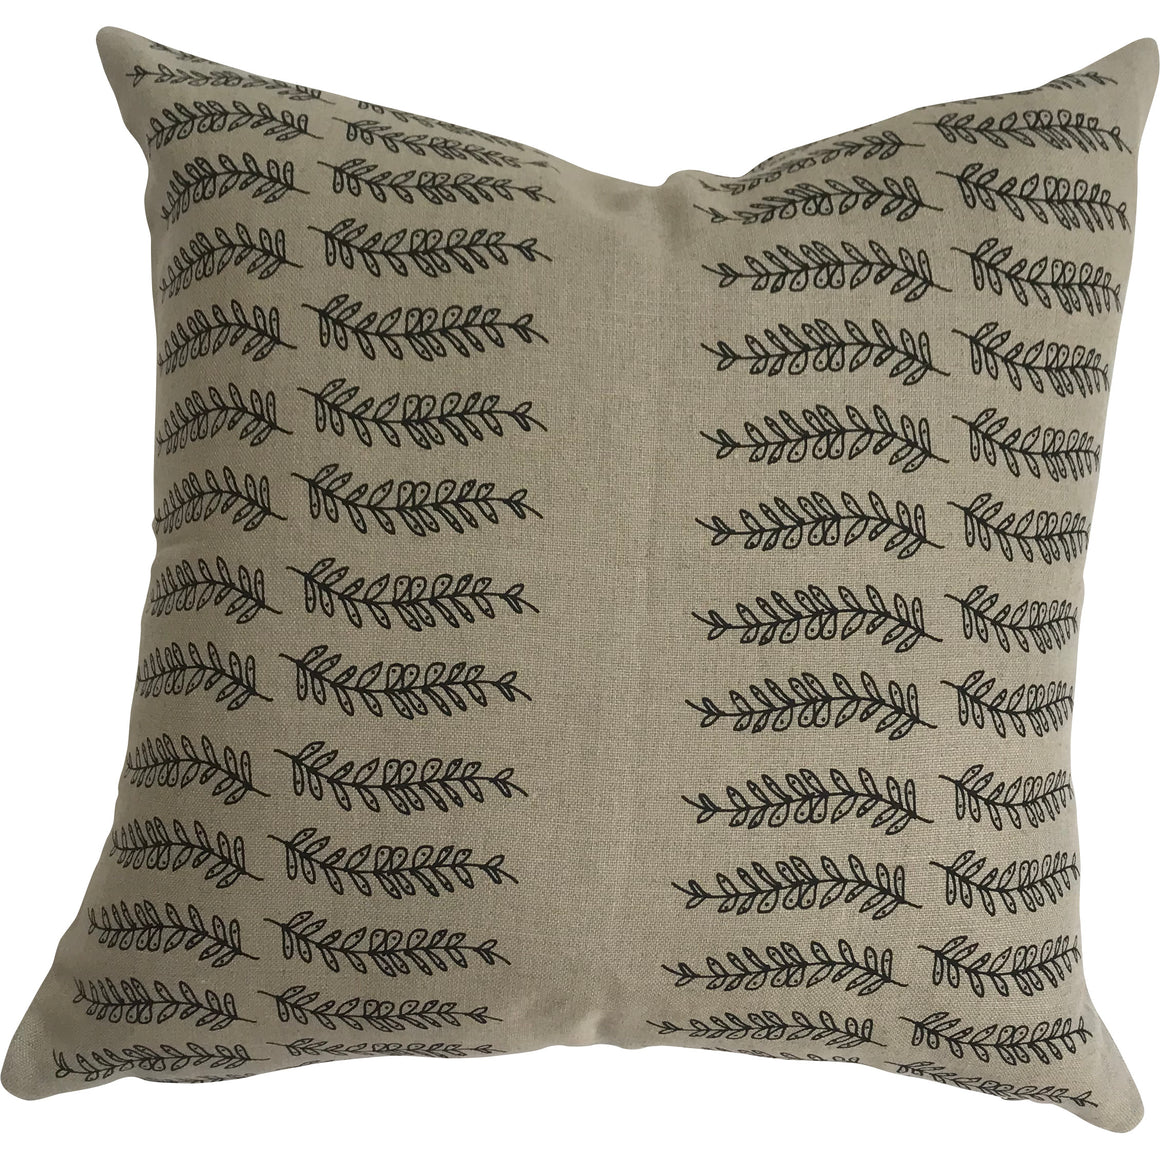 Fern Stripe pillow Black on Natural